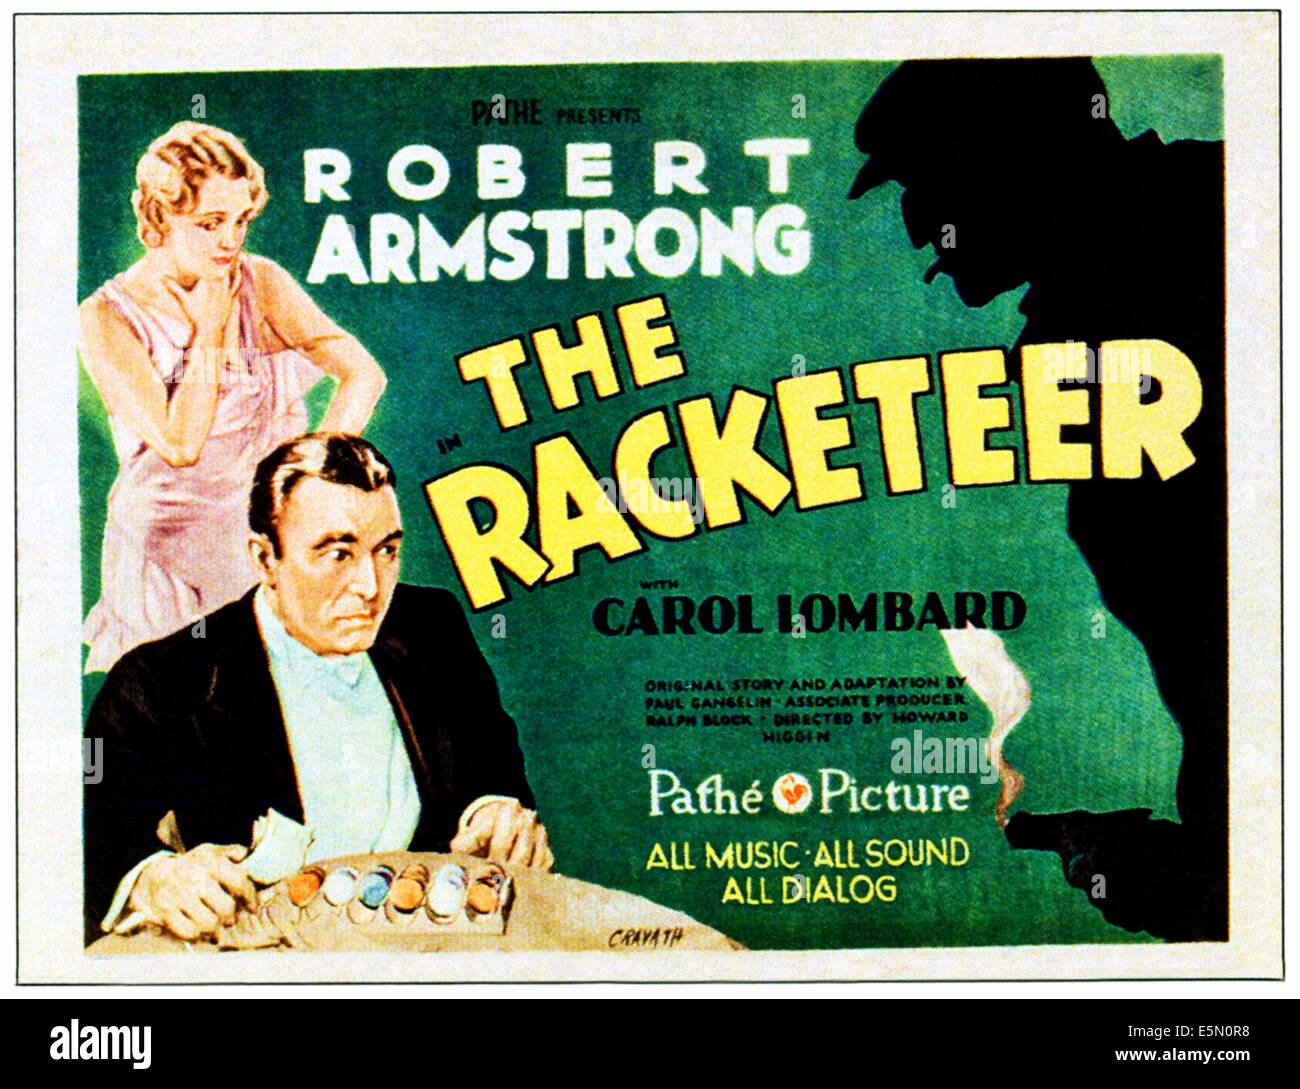 THE RACKETEER, from left: Carole Lombard, Robert Armstrong on title lobbycard, 1929. - Stock Image